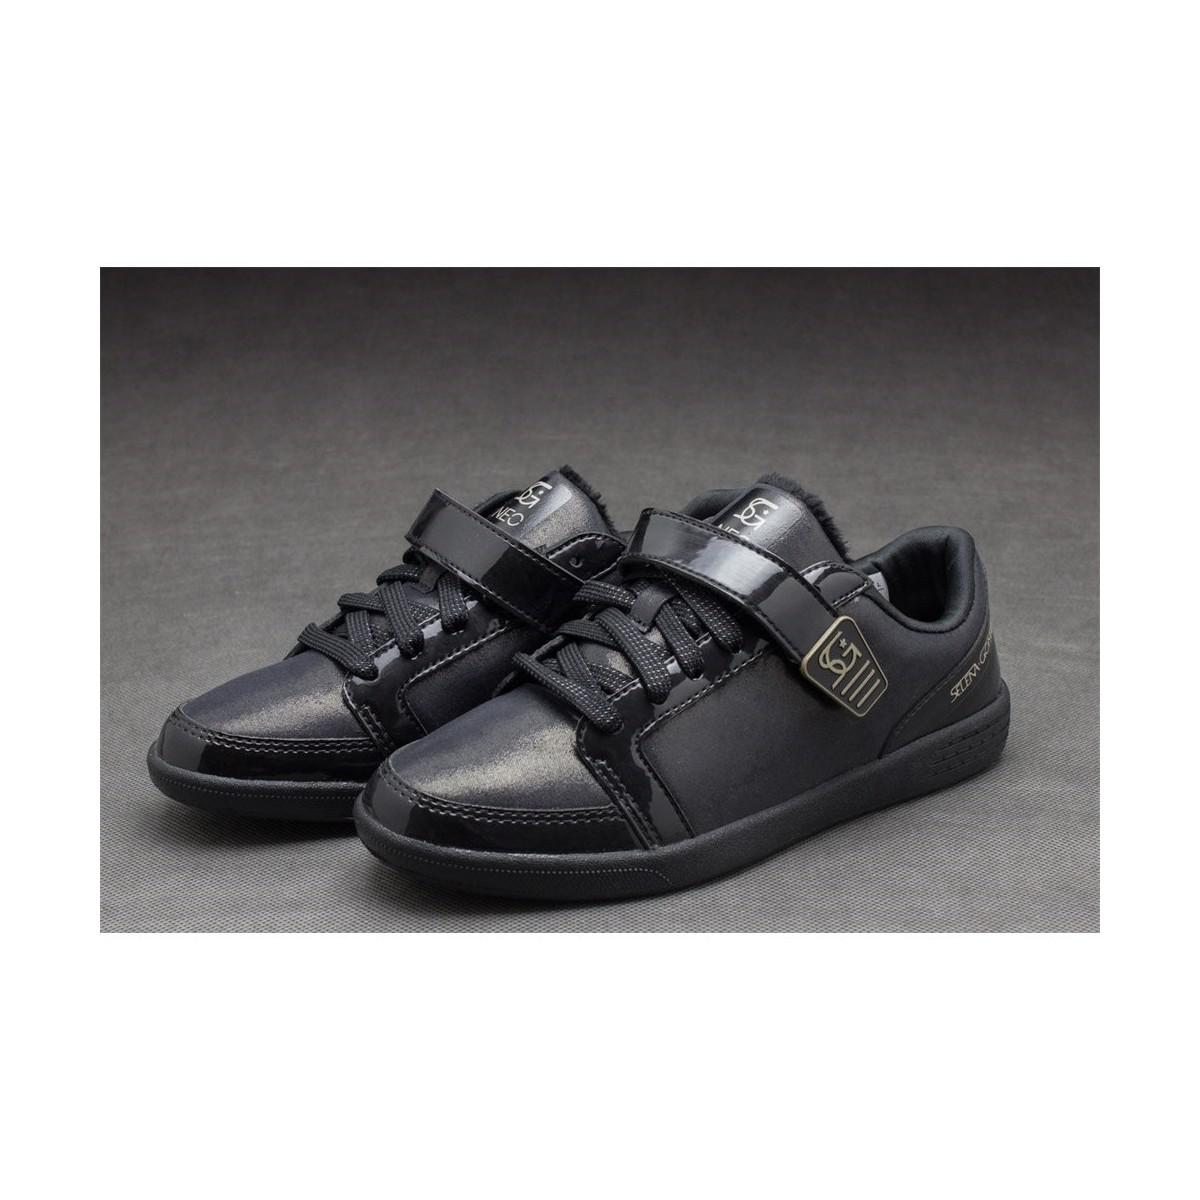 Chaussures Adidas Neo Baseline Hook LO SG oonZk3V